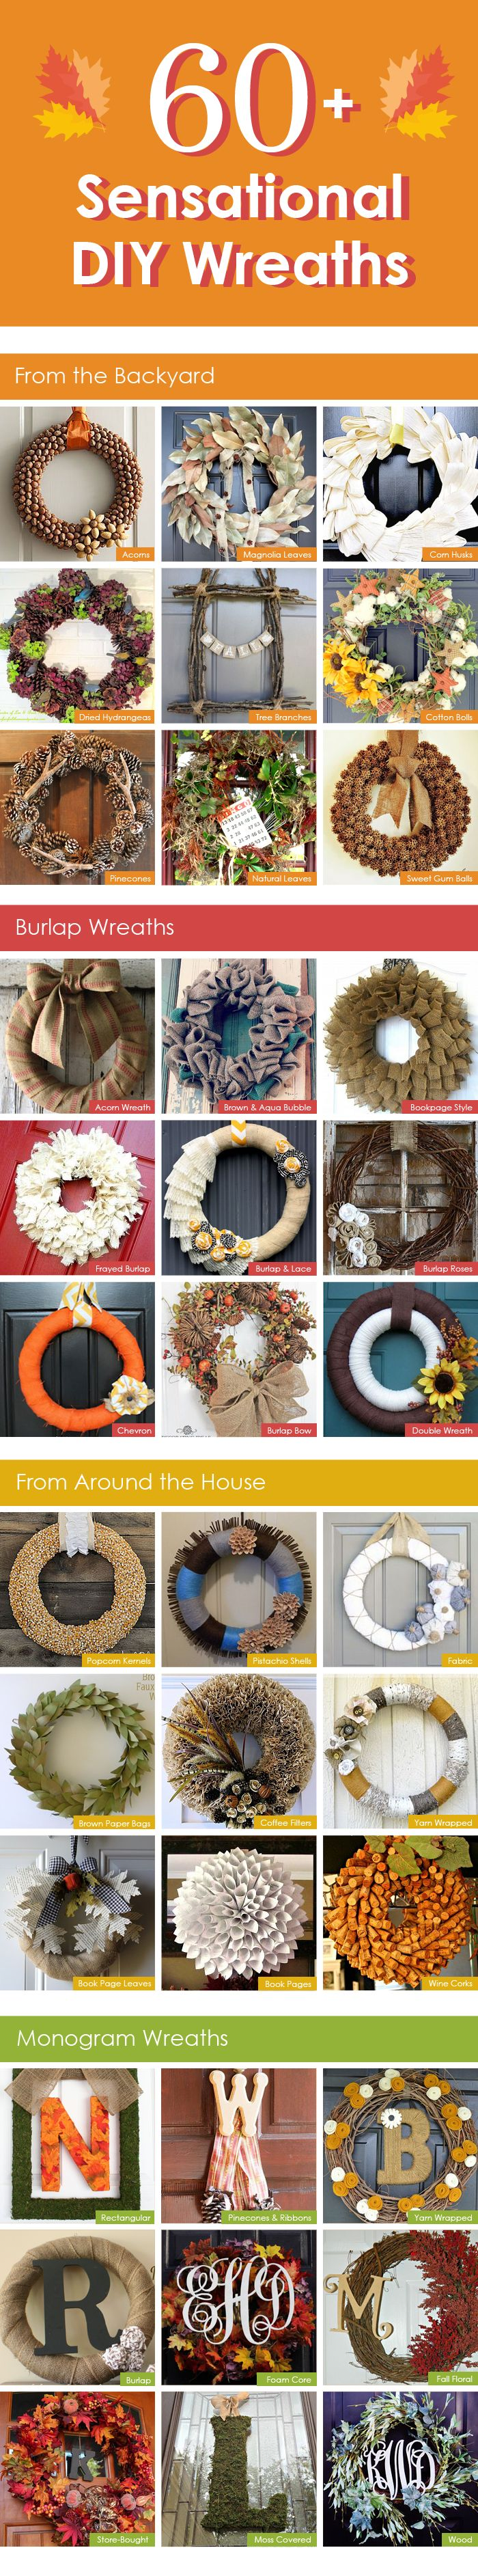 60+ Sensational DIY Wreaths